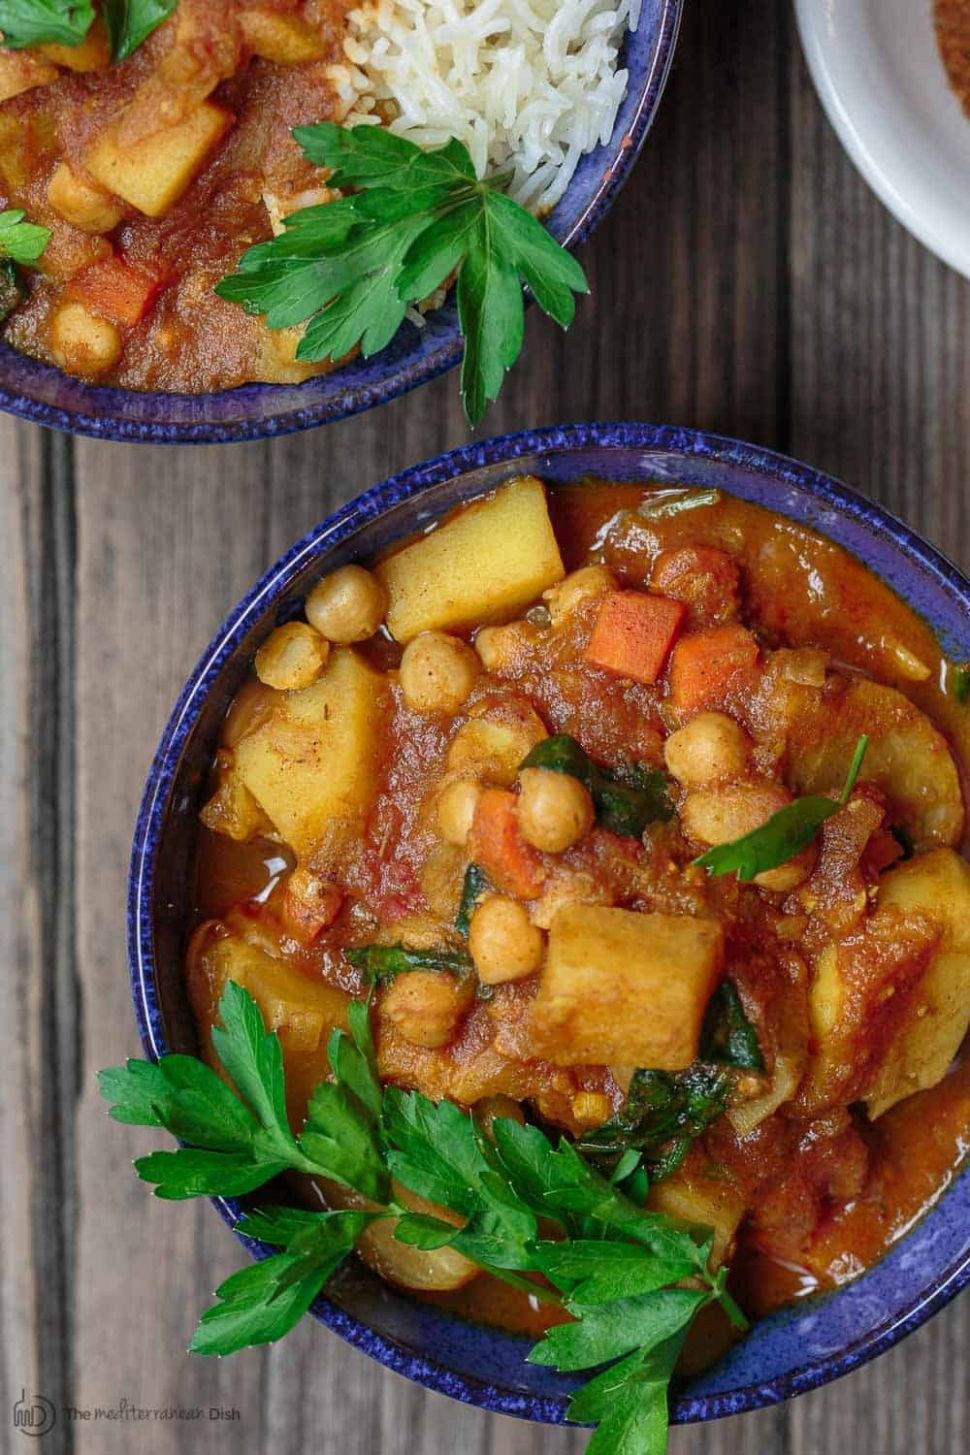 Easy Moroccan Vegetable Tagine Recipe | The Mediterranean Dish - Recipes Vegetable Tagine